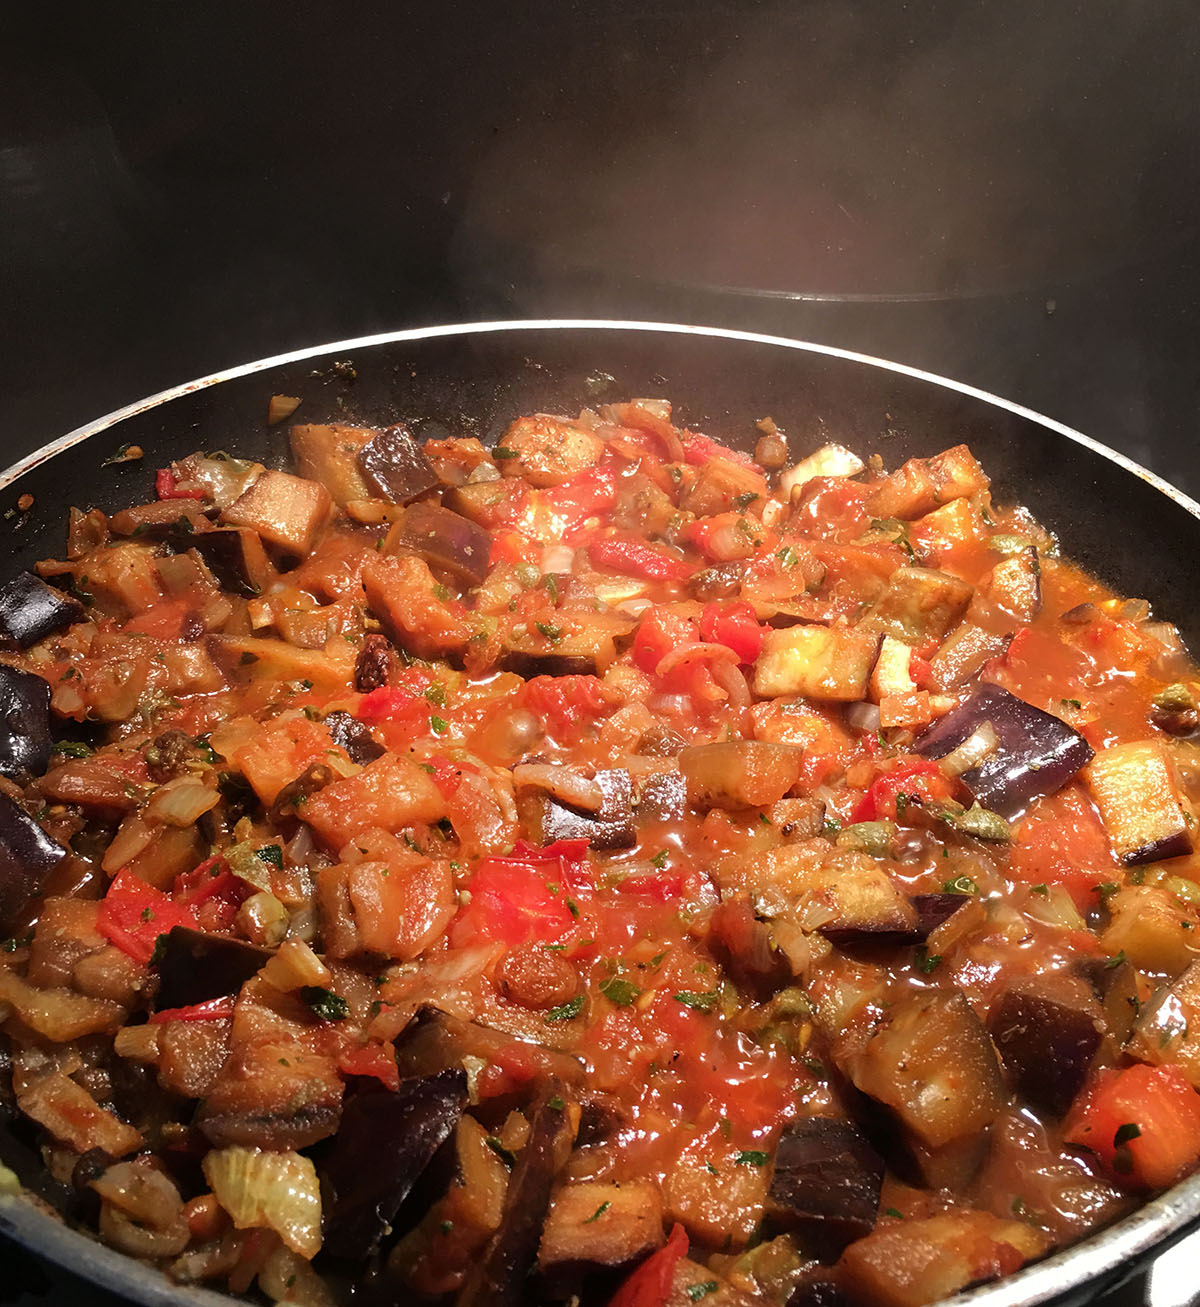 Sicilian Pasta with Eggplant, Pine Nuts and Raisins